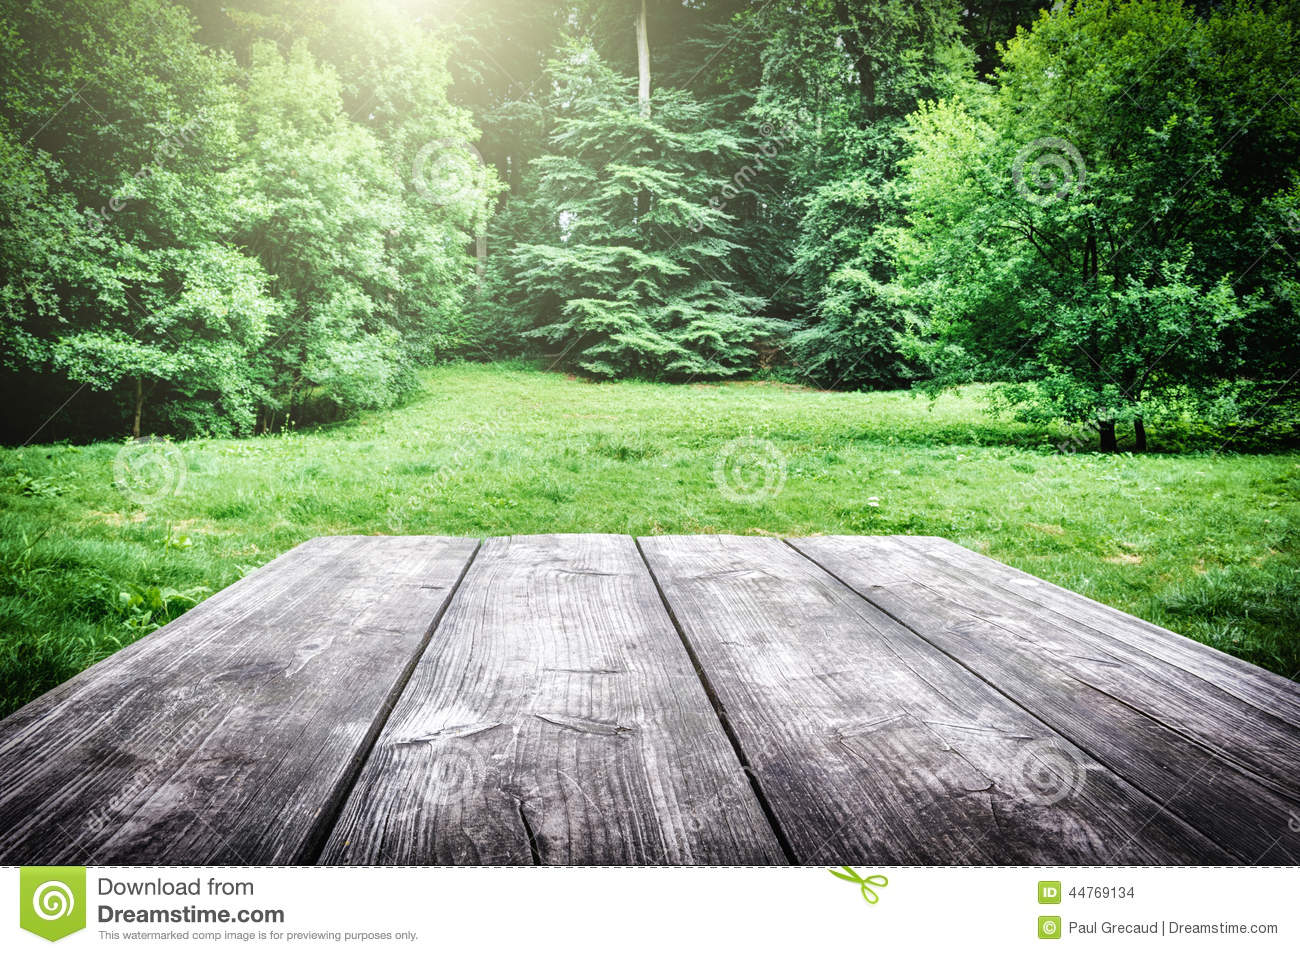 Wooden Picnic Table In Forest Stock Photo - Image: 44769134